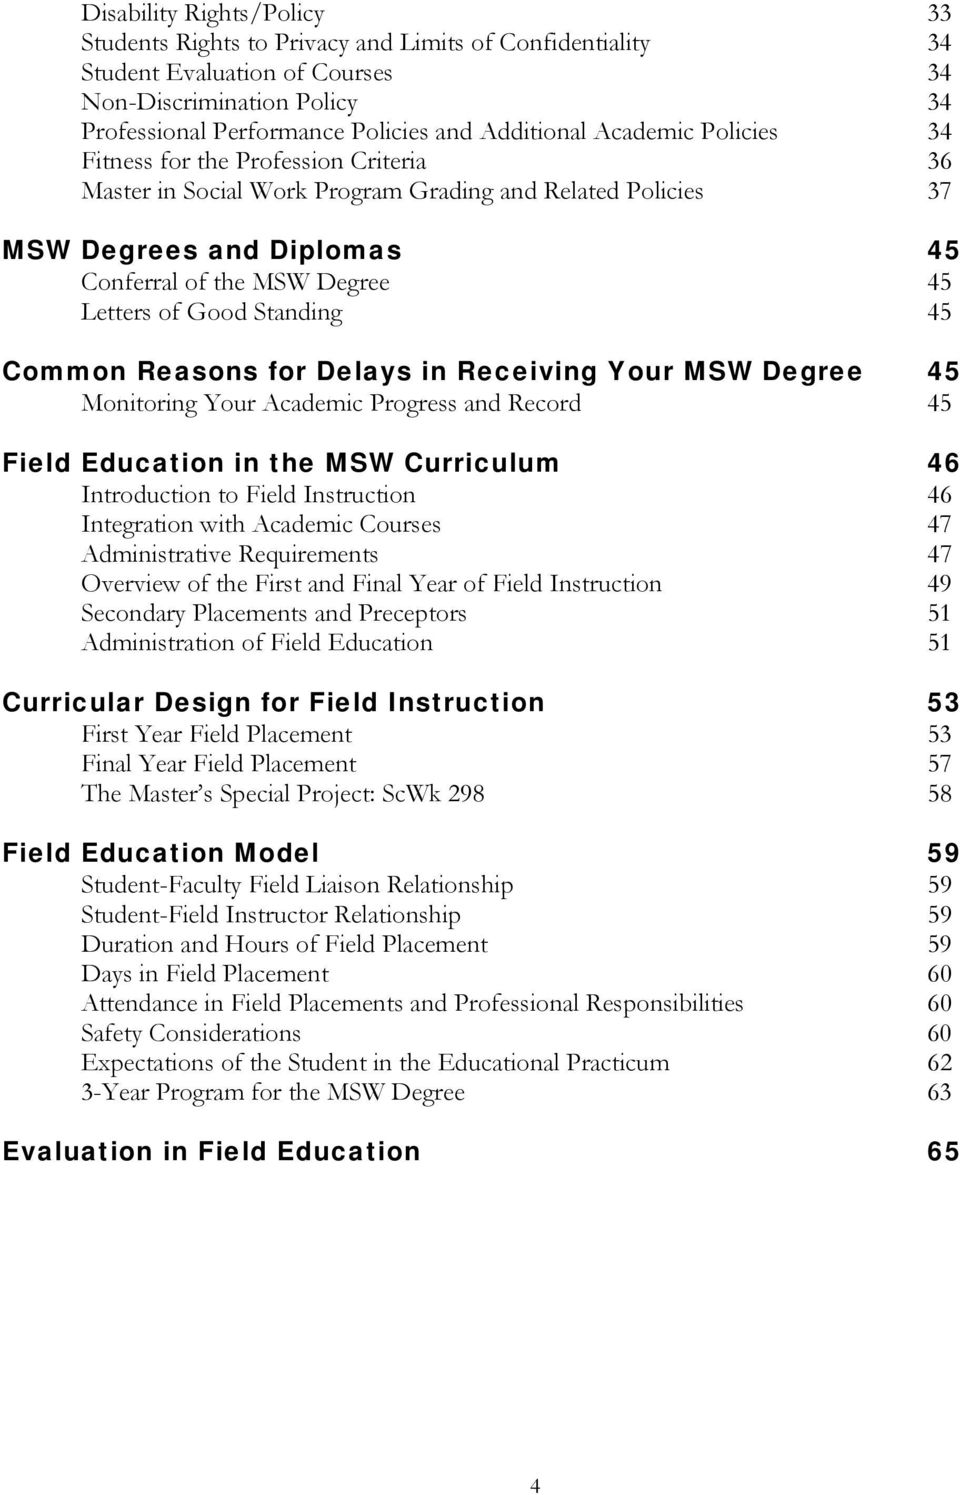 Standing 45 Common Reasons for Delays in Receiving Your MSW Degree 45 Monitoring Your Academic Progress and Record 45 Field Education in the MSW Curriculum 46 Introduction to Field Instruction 46